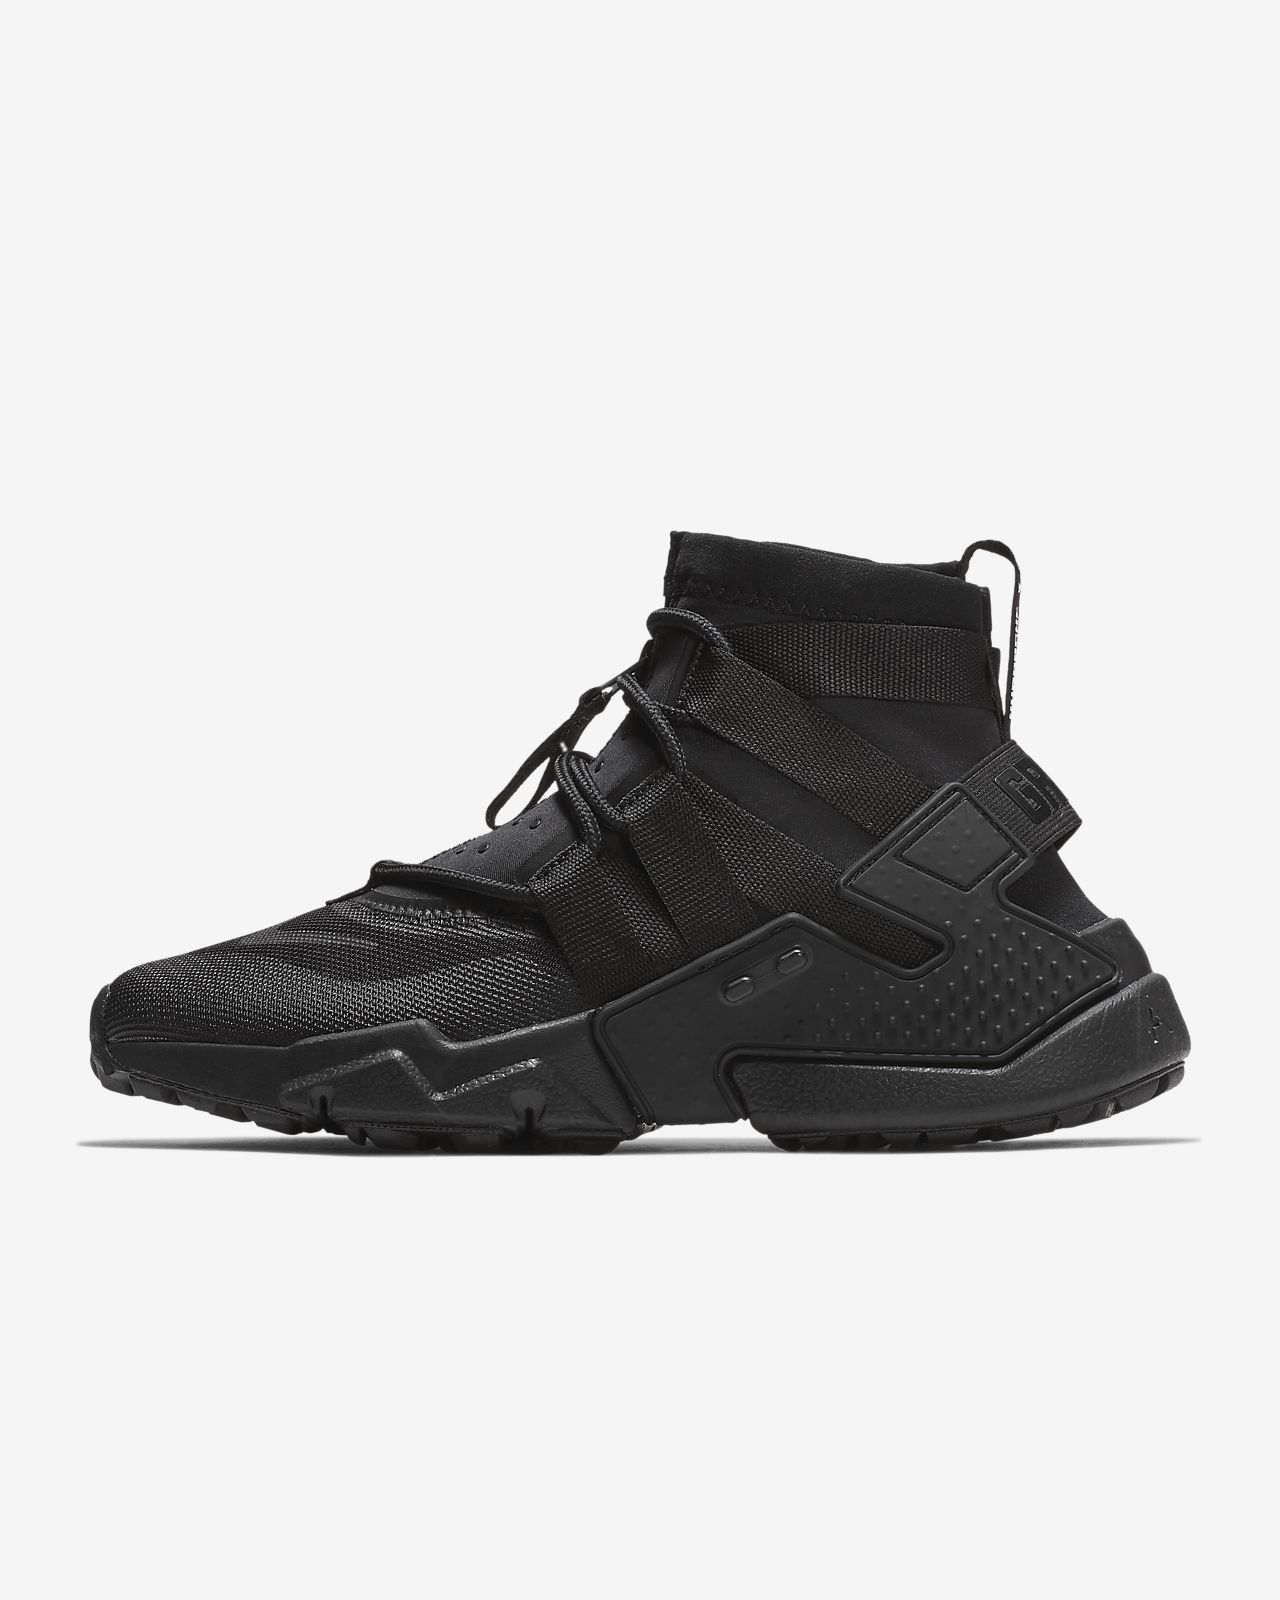 1050d92aa67 Nike Air Huarache Gripp Men s Shoe. Nike.com